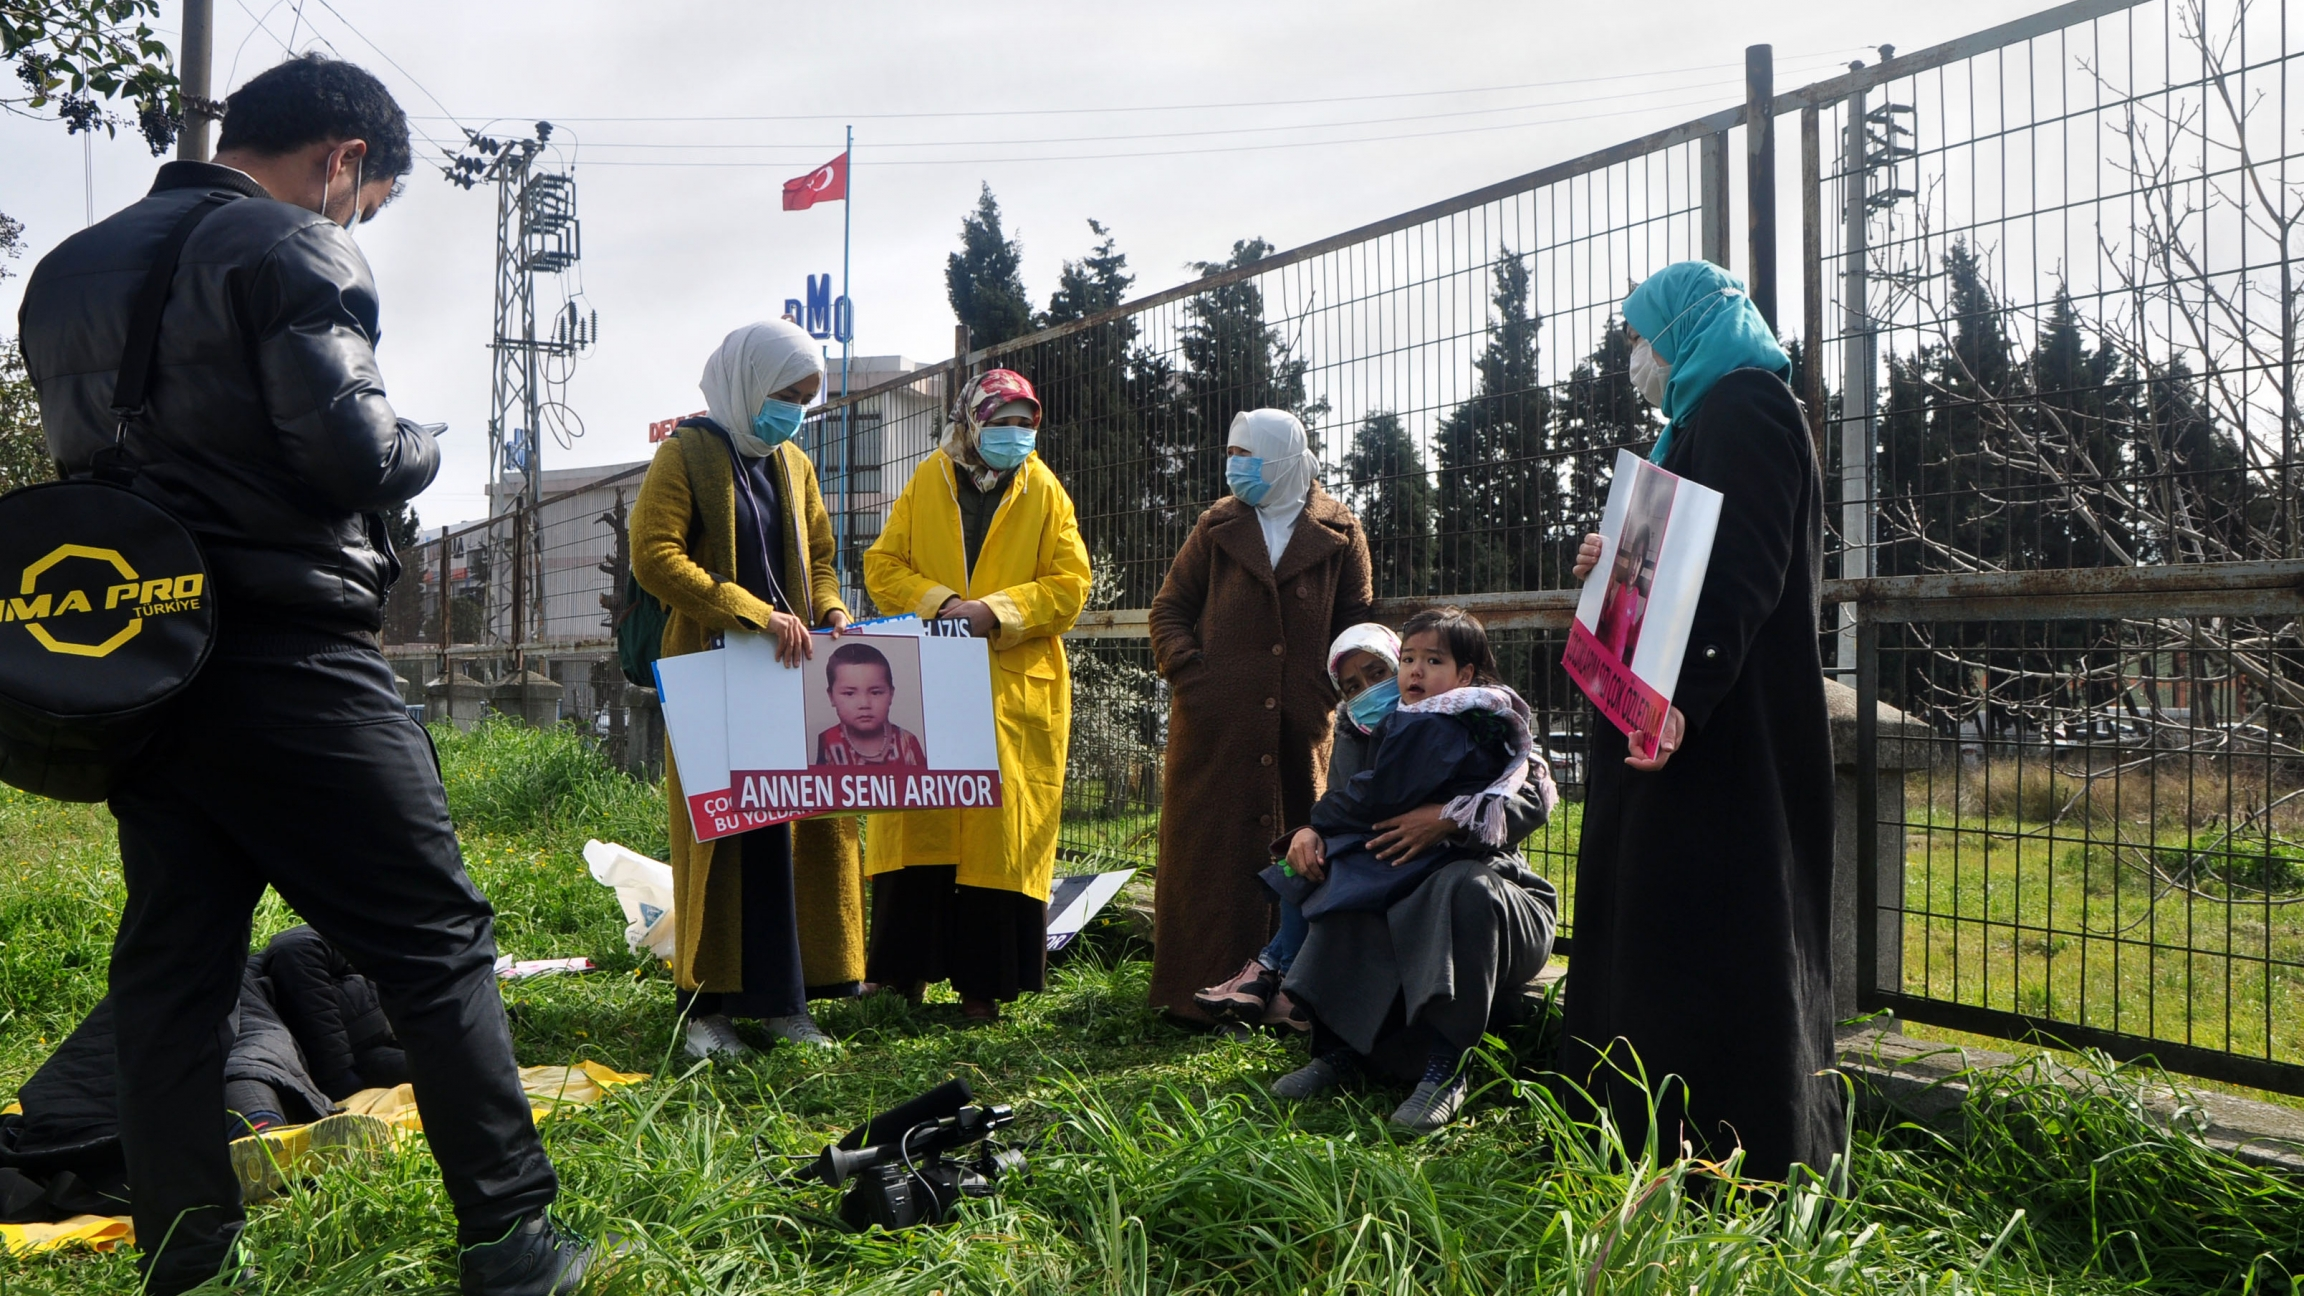 A group of Uyghur mothers are trying to get the Turkish government to help find their missing children in China. The women set out on foot from Istanbul to Ankara, the capital of Turkey, to demonstrate, and say they will continue to wait there until offic